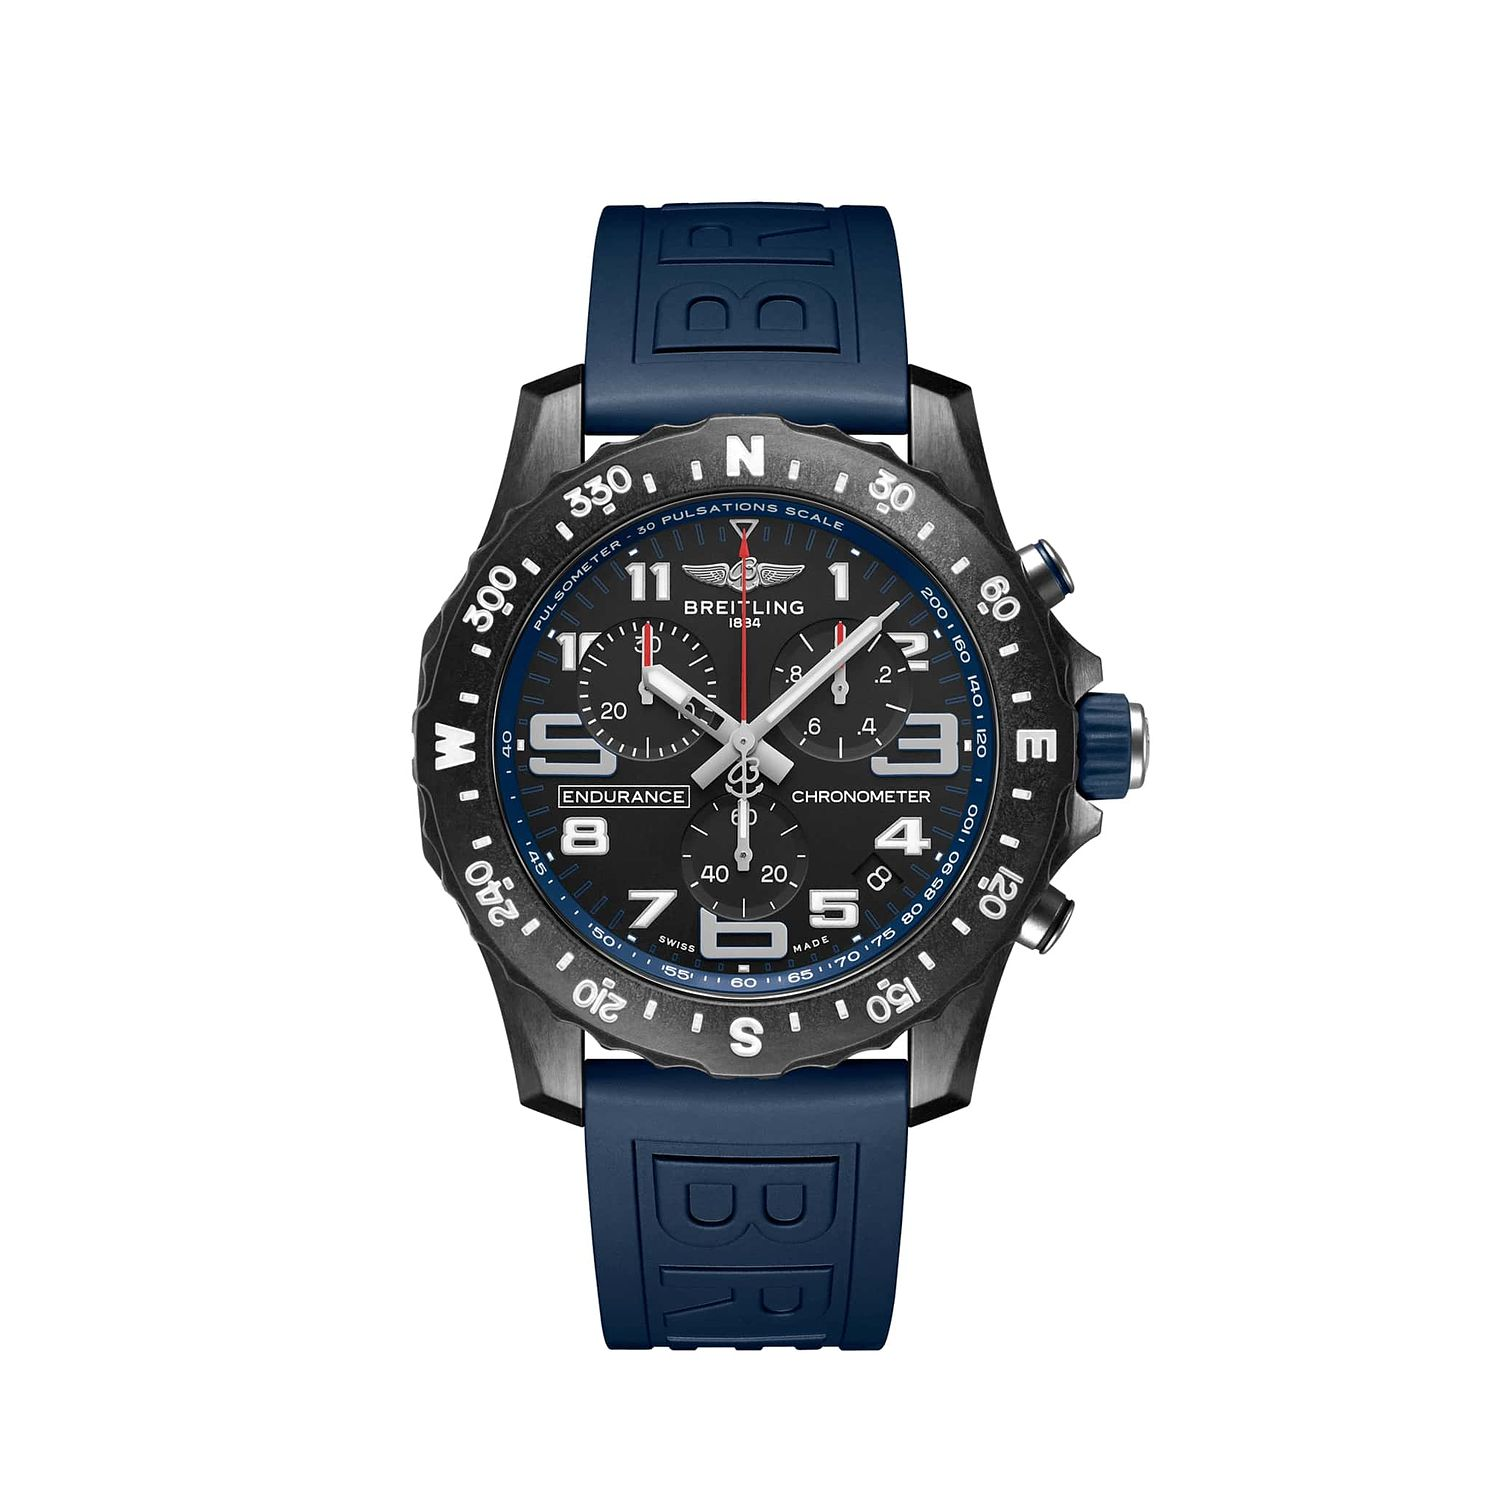 Breitling Endurance Pro Chrono Blue Rubber Strap Watch - Product number 1162632